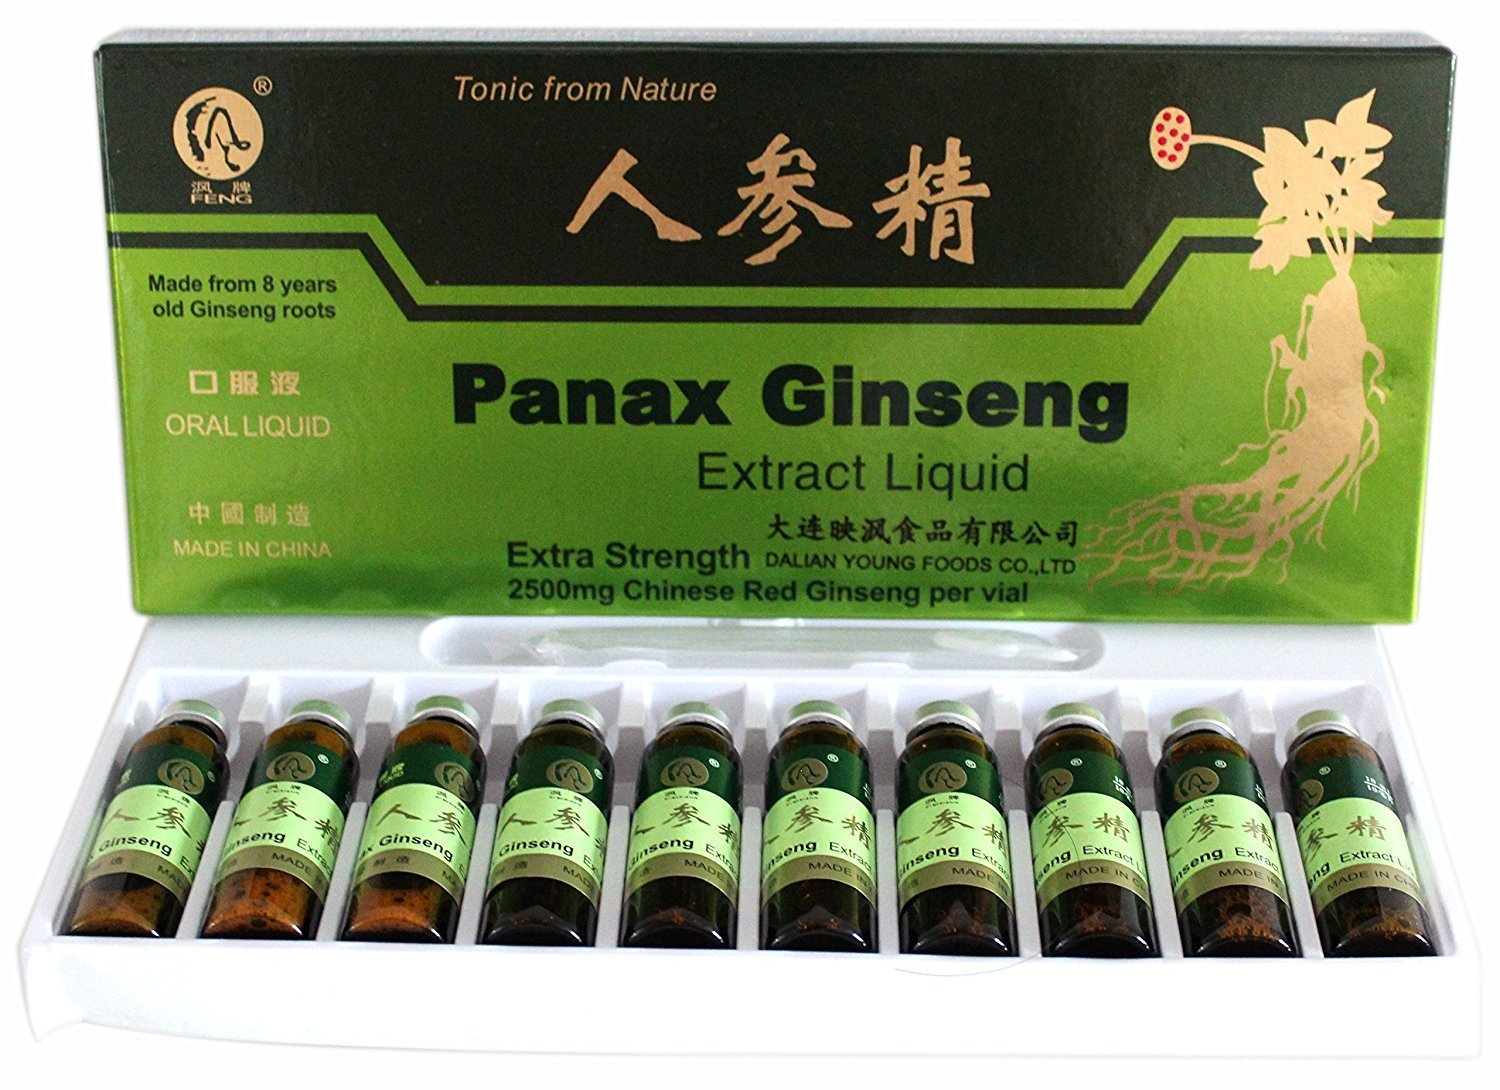 Extra Strength Panax Ginseng made of 8 years old Ginseng Roots